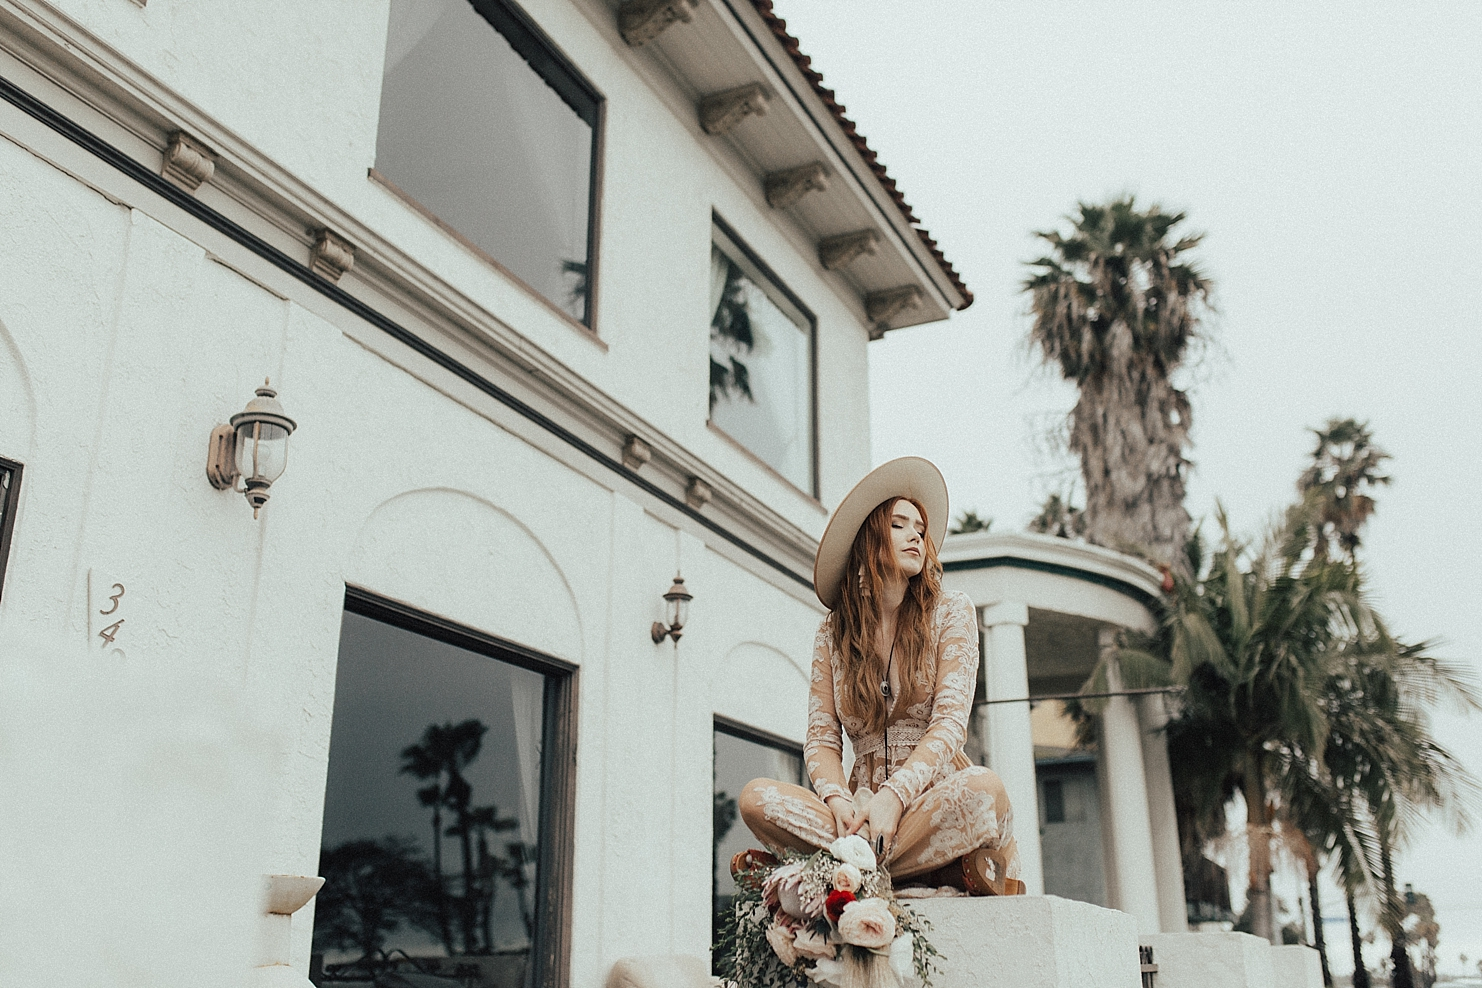 LONG BEACH ELOPEMENT INDIE BRIDE BOHO LOS ANGELES PHOTOGRAPHER RACHEL WAKEFIELD LA ELOPEMENT PHOTOGRAPHER-55.jpg